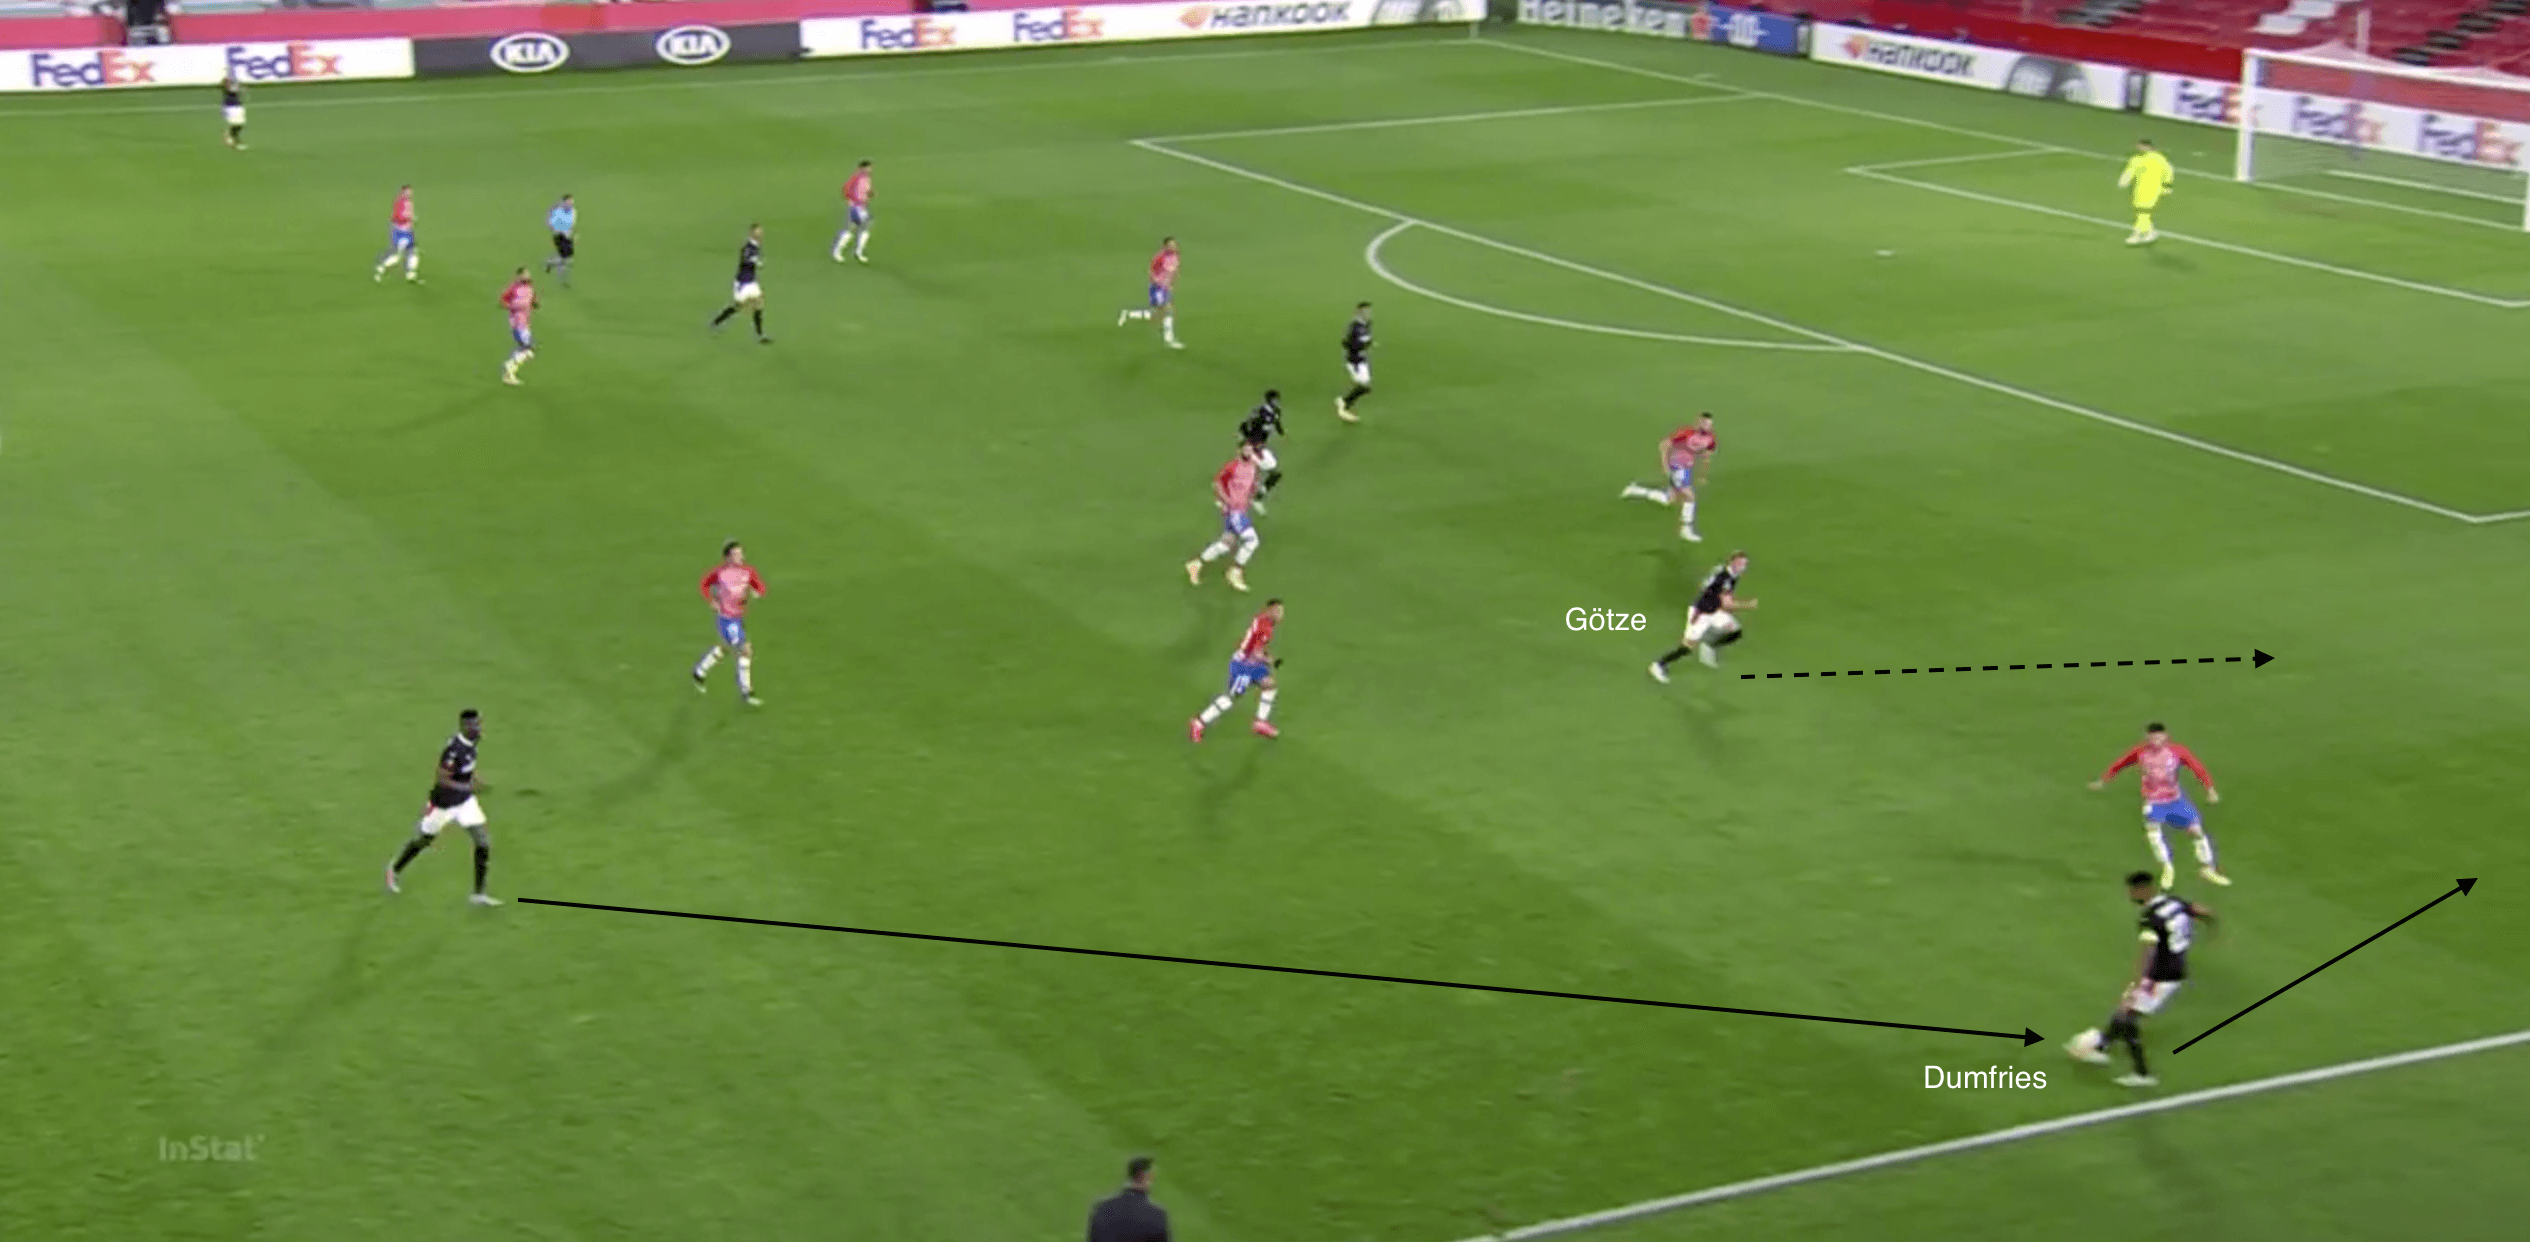 UEFA Europa League 2020/21: Granada vs PSV Eindhoven - tactical analysis tactics